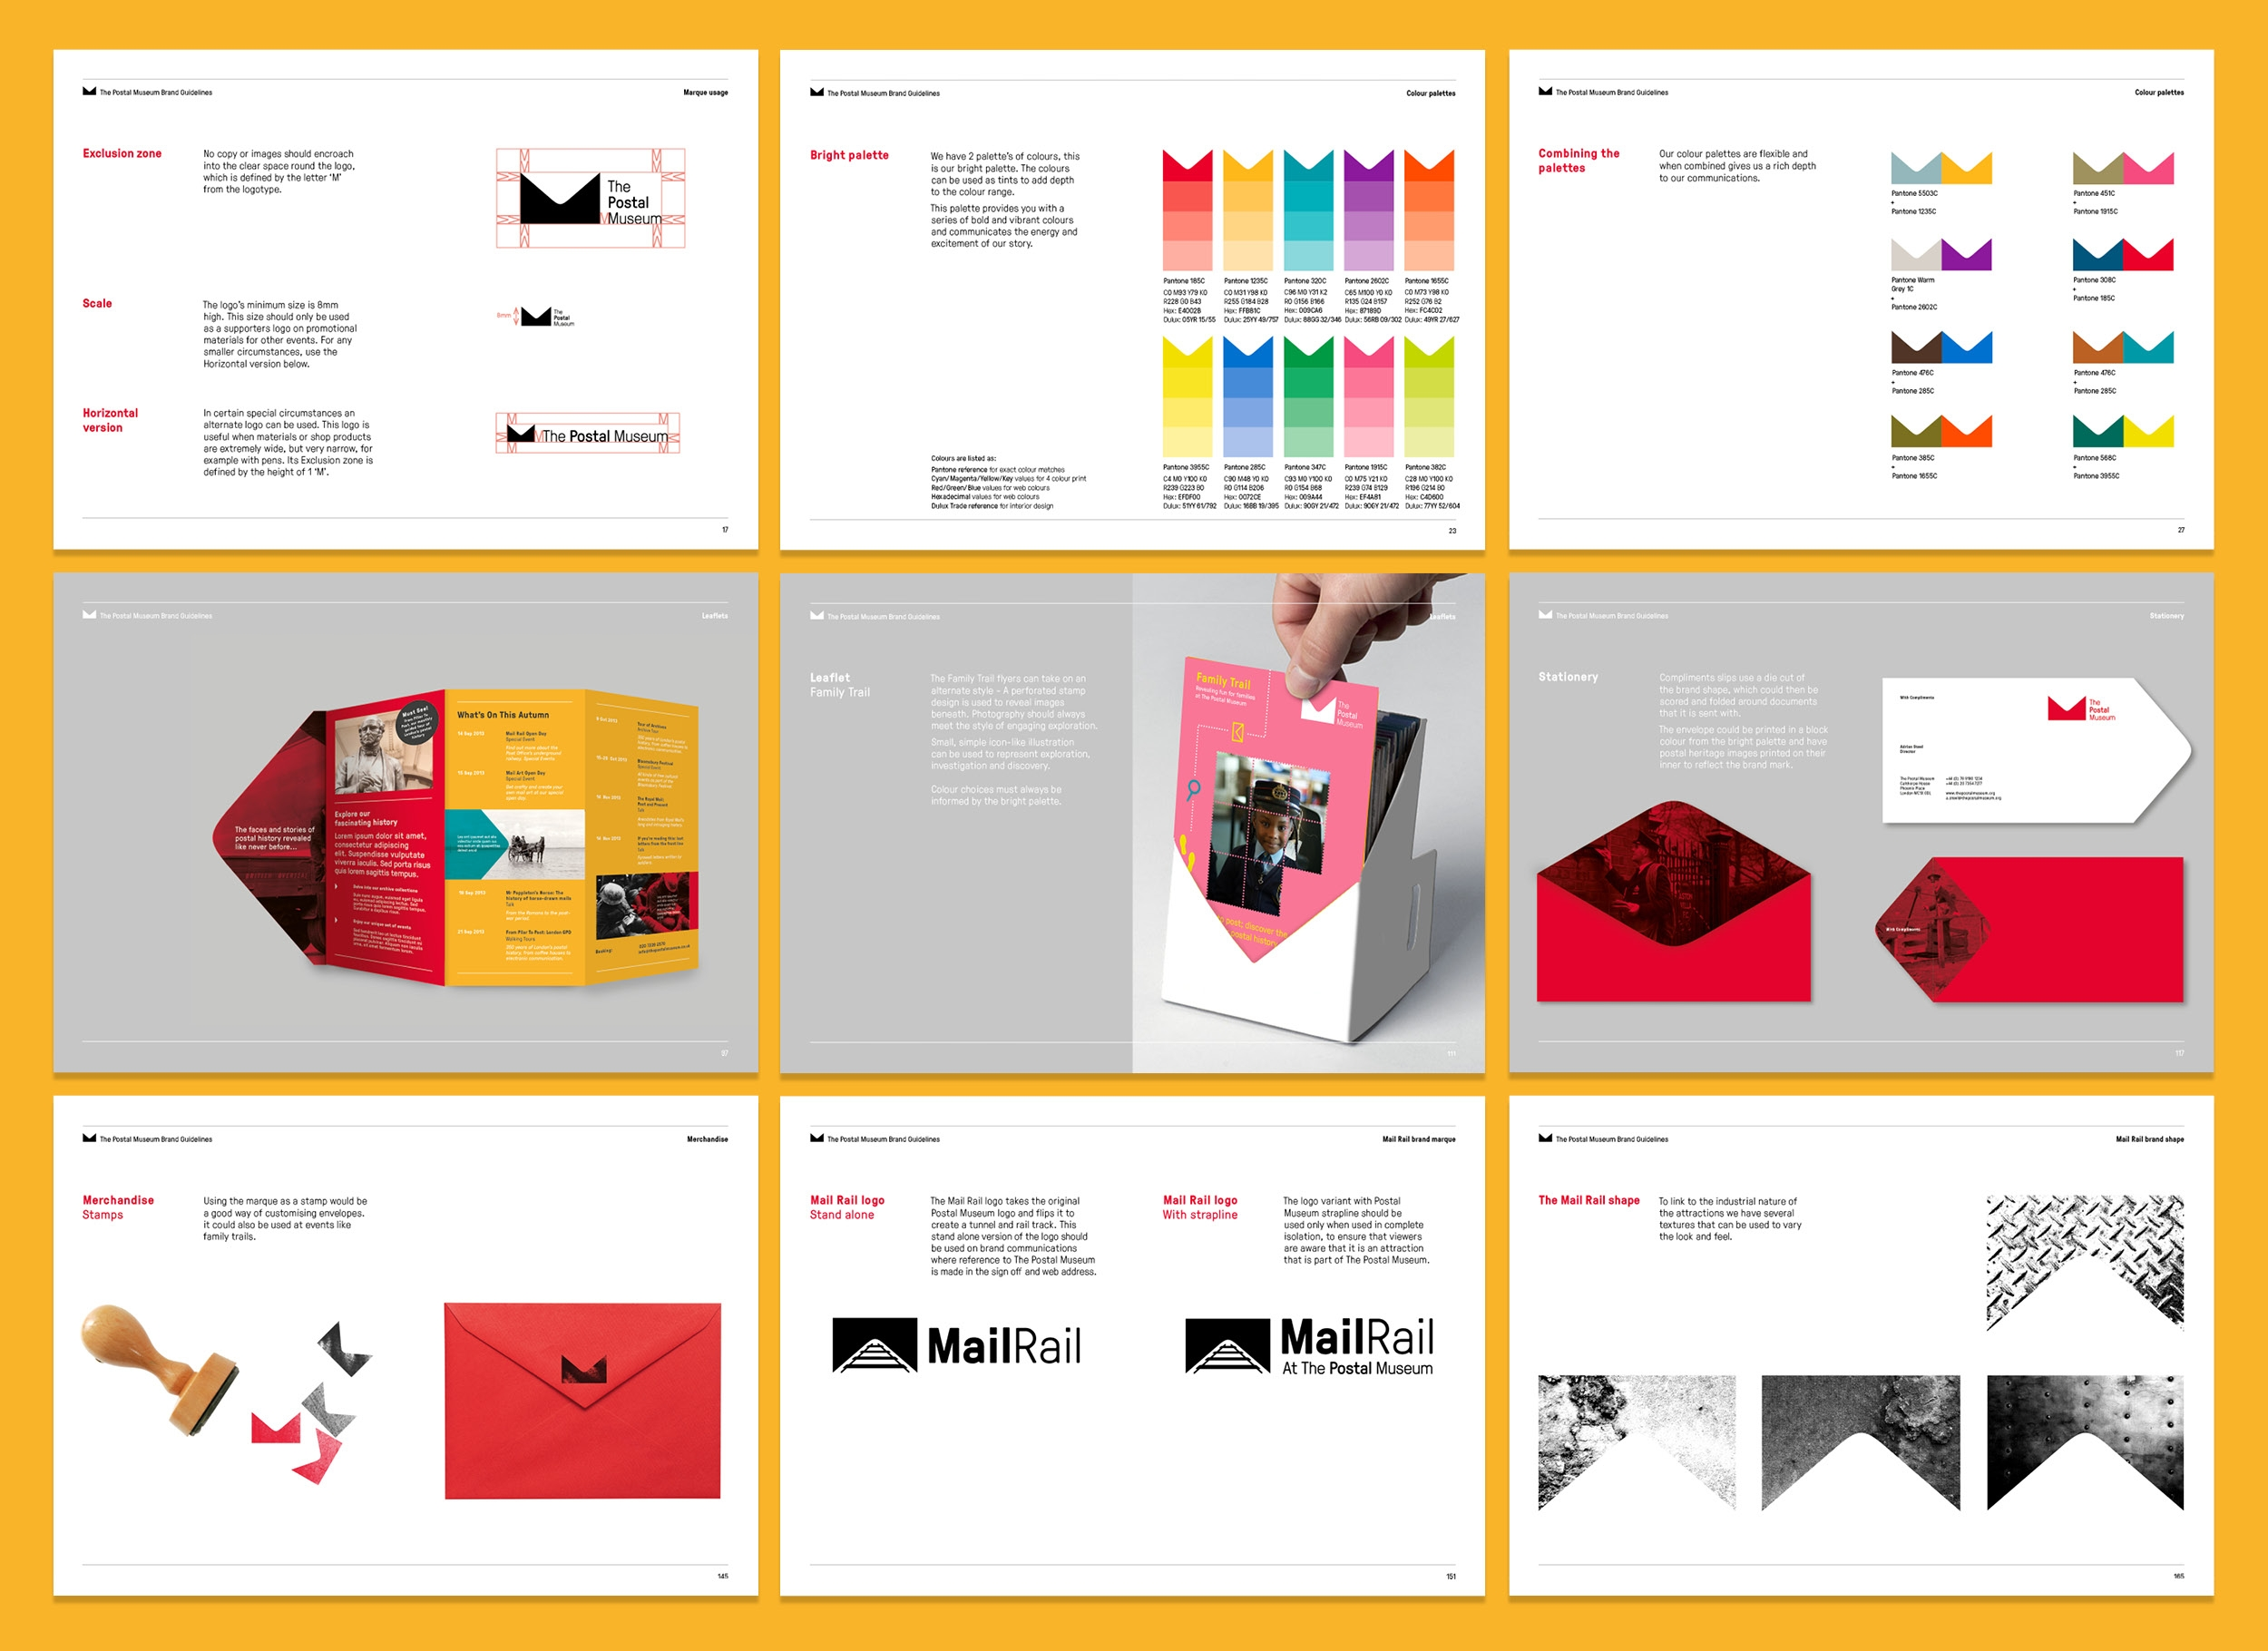 Museum branding, brand guidelines, museum brand values and tone of voice for The Postal Museum by Altogether Creative.